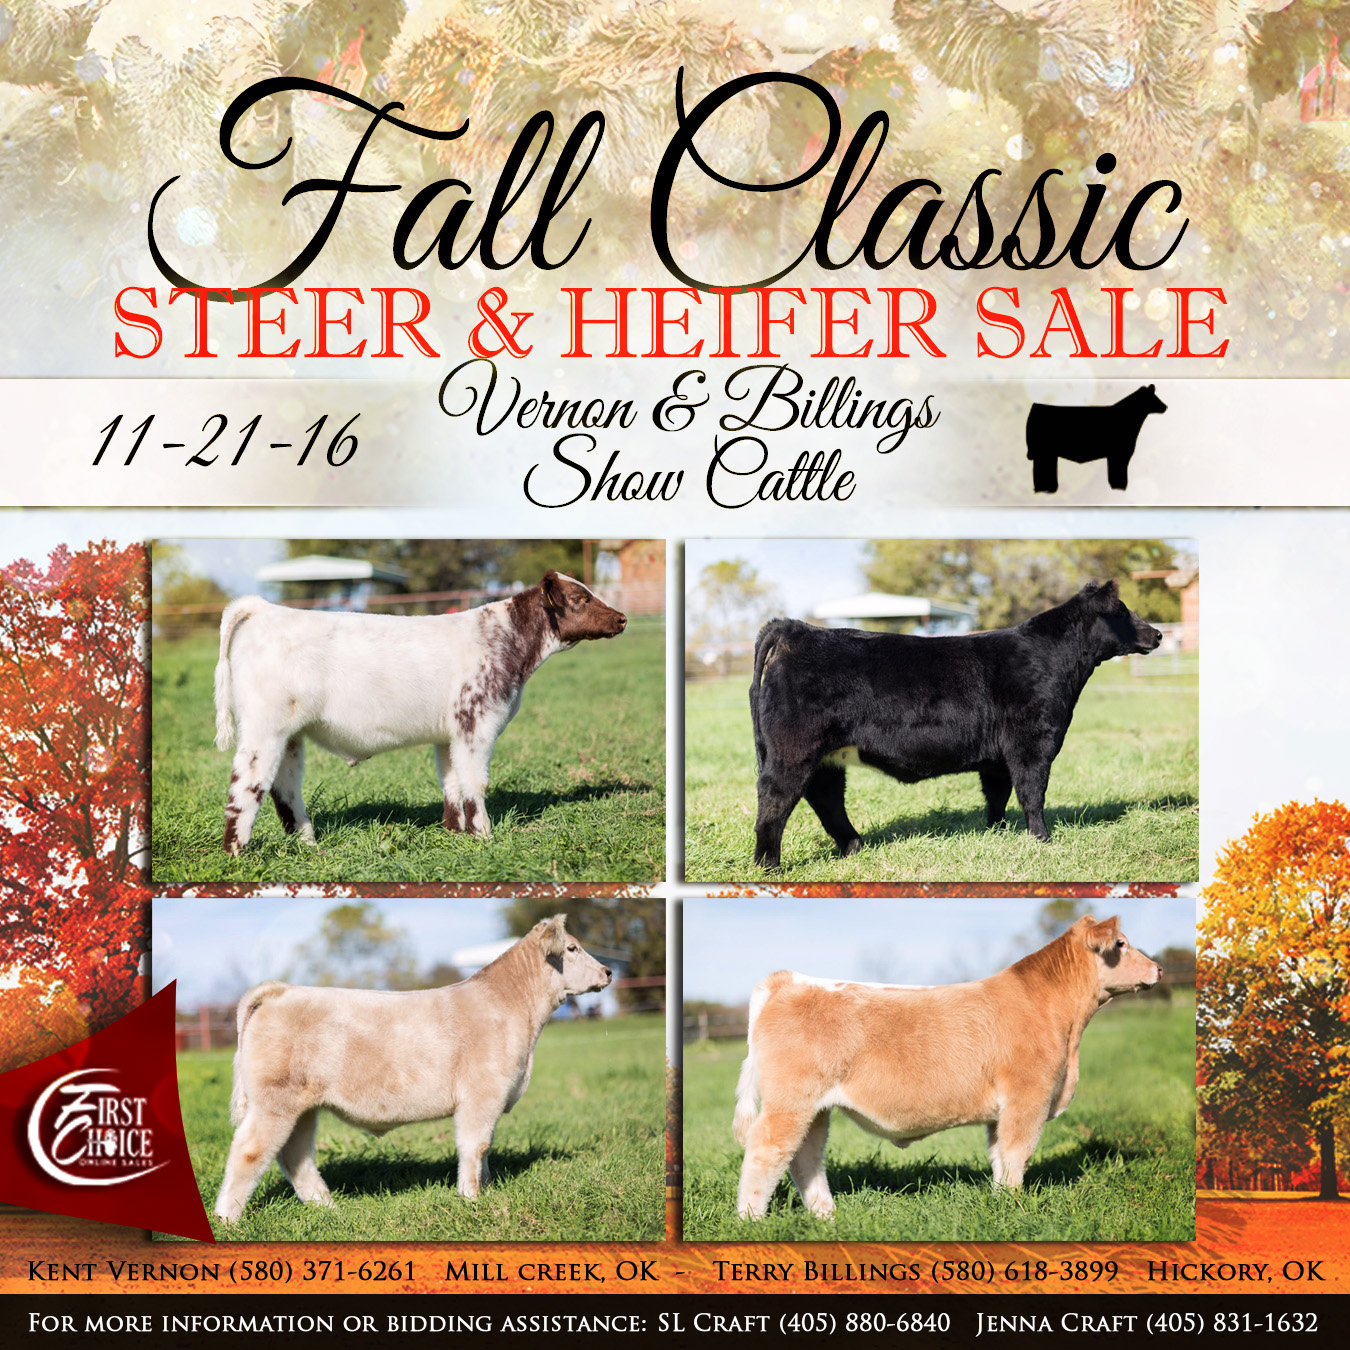 Fall Classic Steer & Heifer Sale | The Pulse